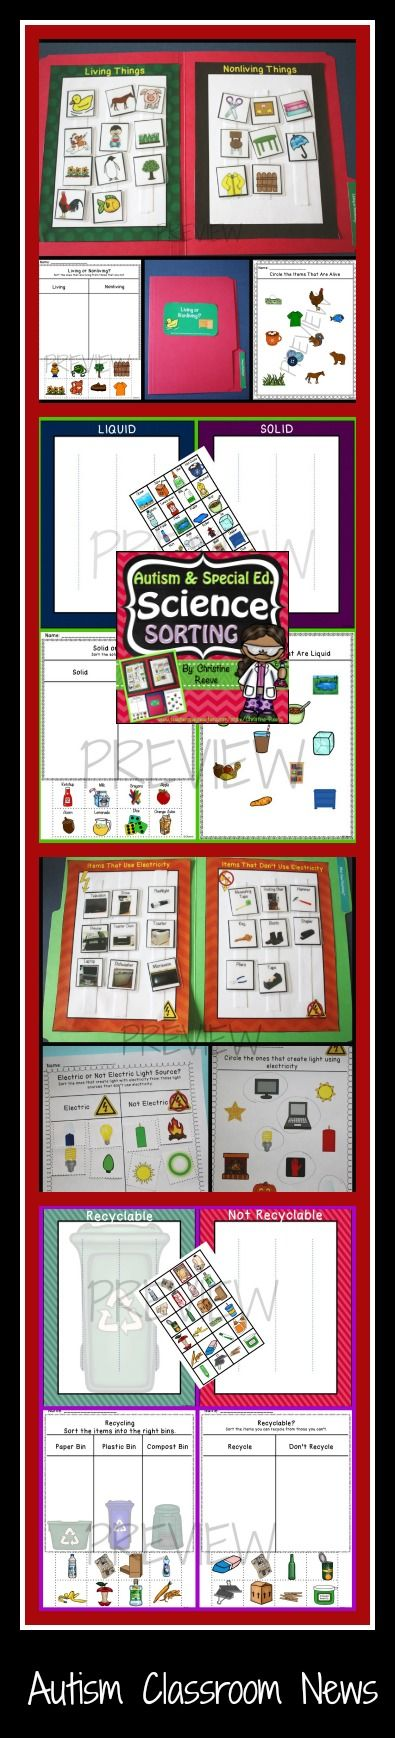 Download the preview for a free print-and-go activity. Science sorting for functional elementary science in special education. Seven file folder activities with 25 print-and-go activities focused on recycling, electricity, solid/liquid, and living/non-living. $4